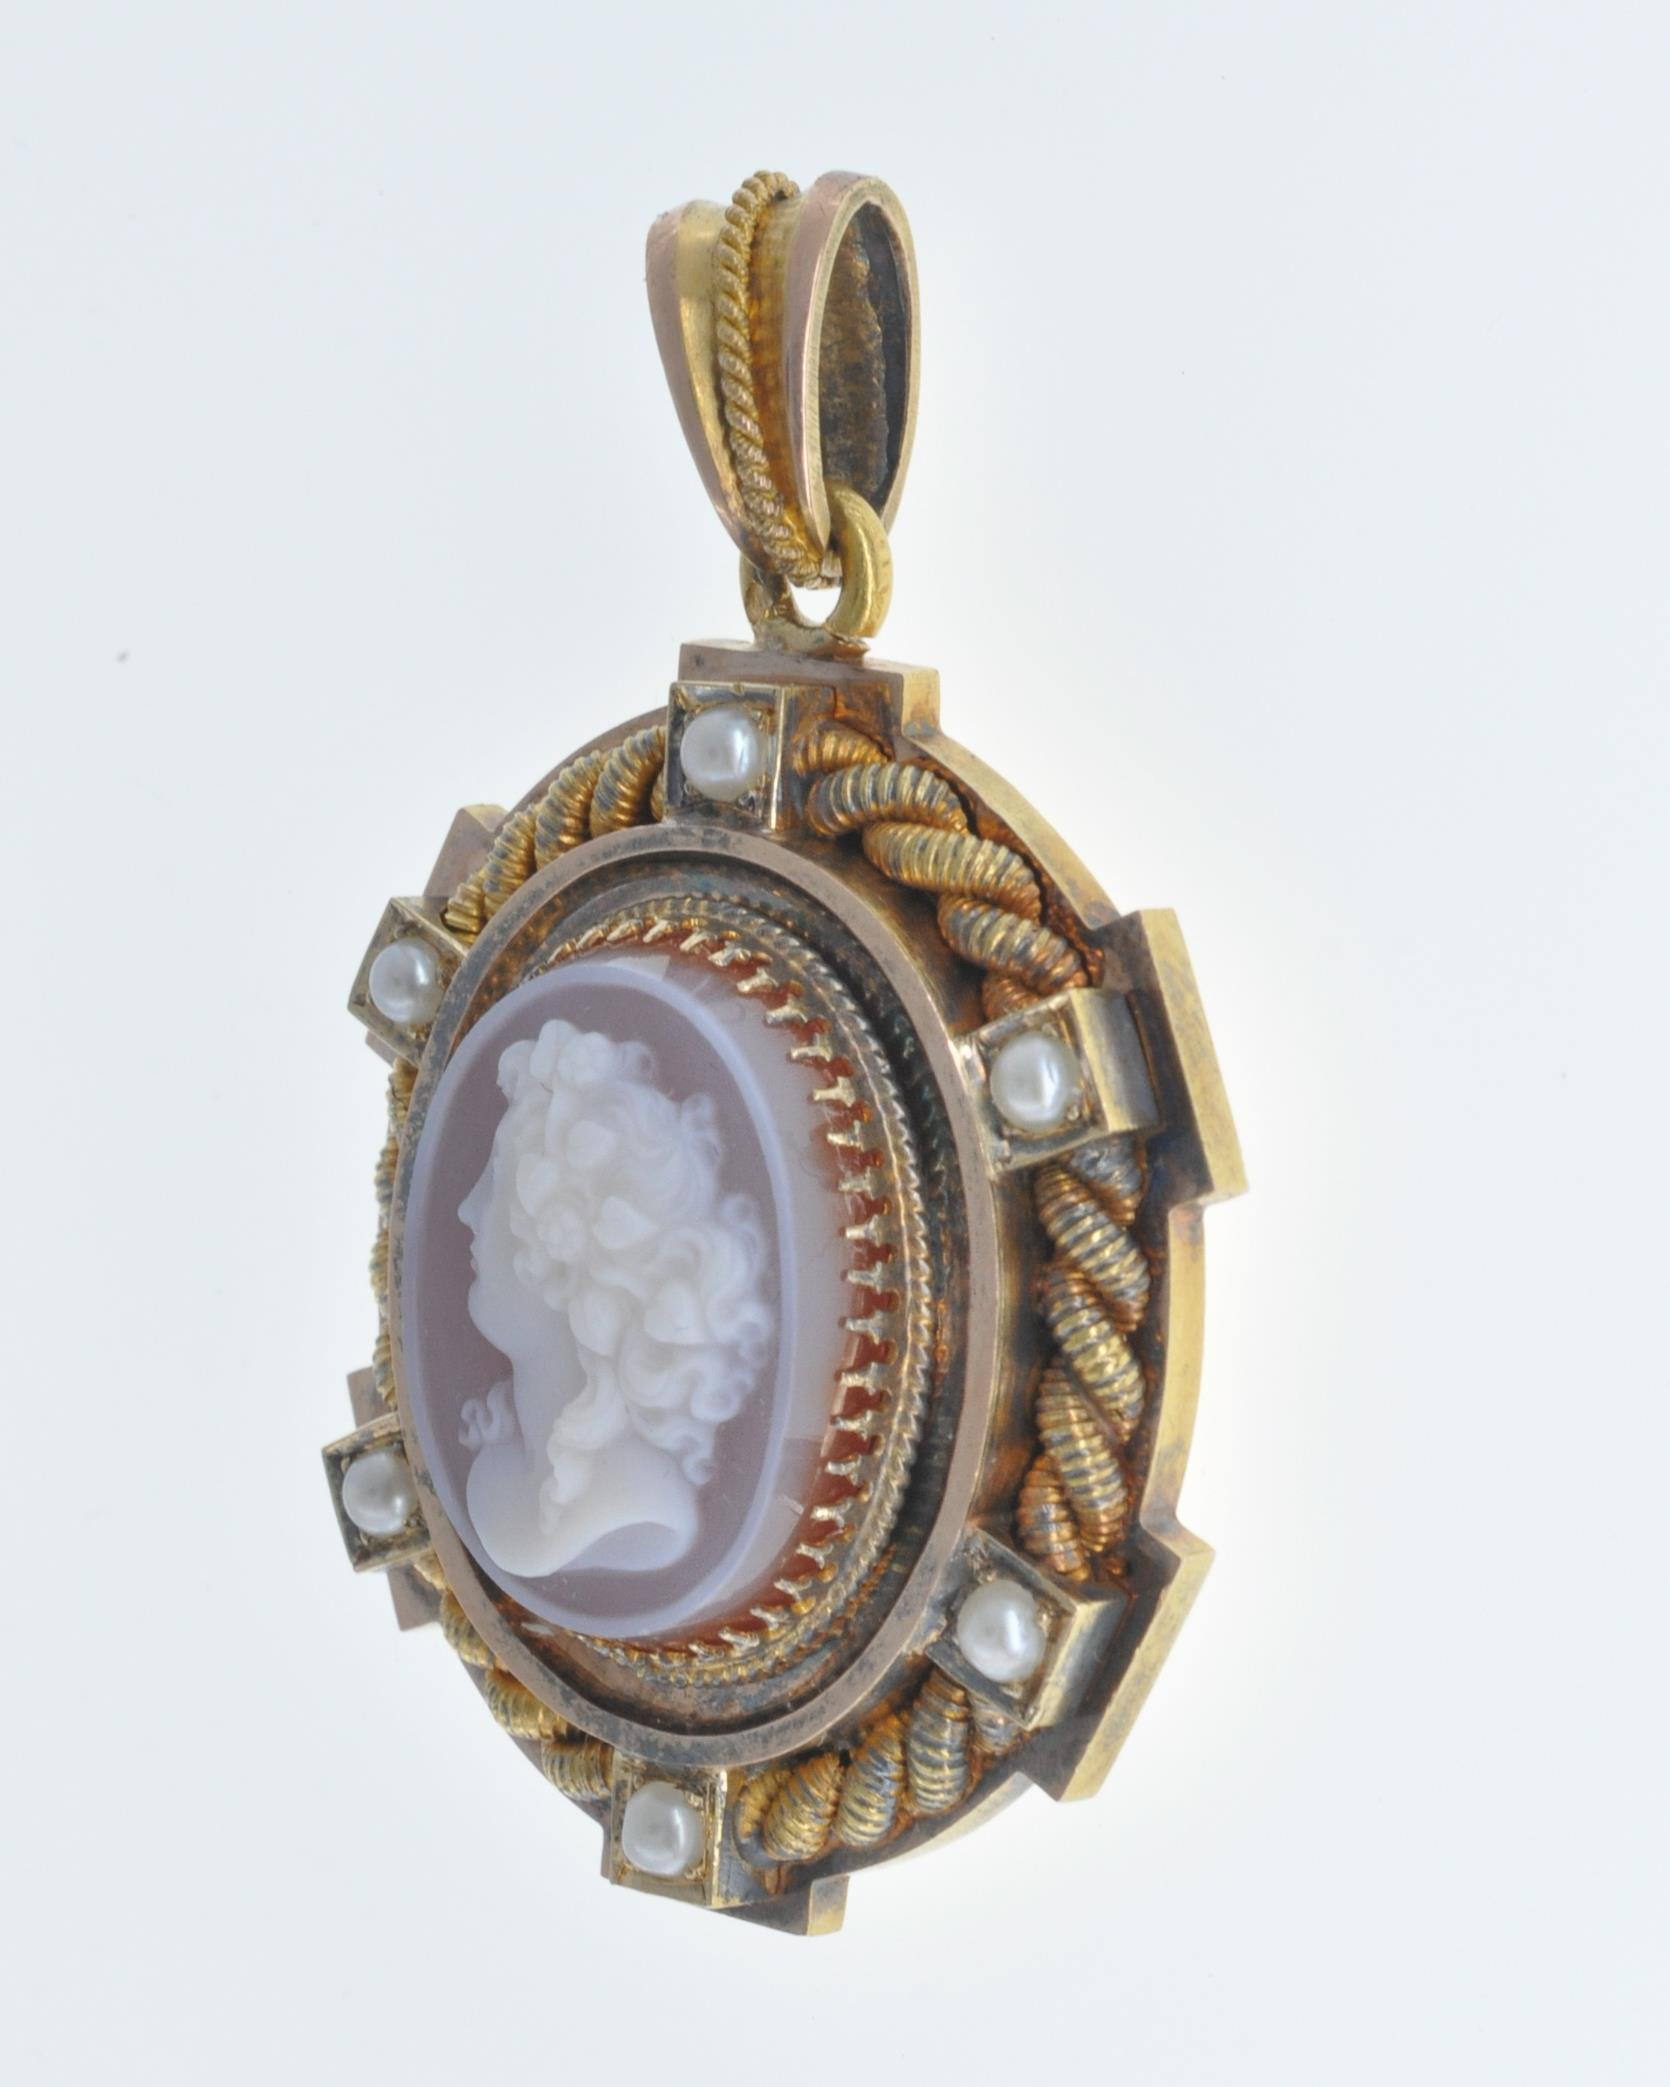 ANTIQUE SEED PEARL AND CAMEO LOCKET PENDANT - Image 4 of 8